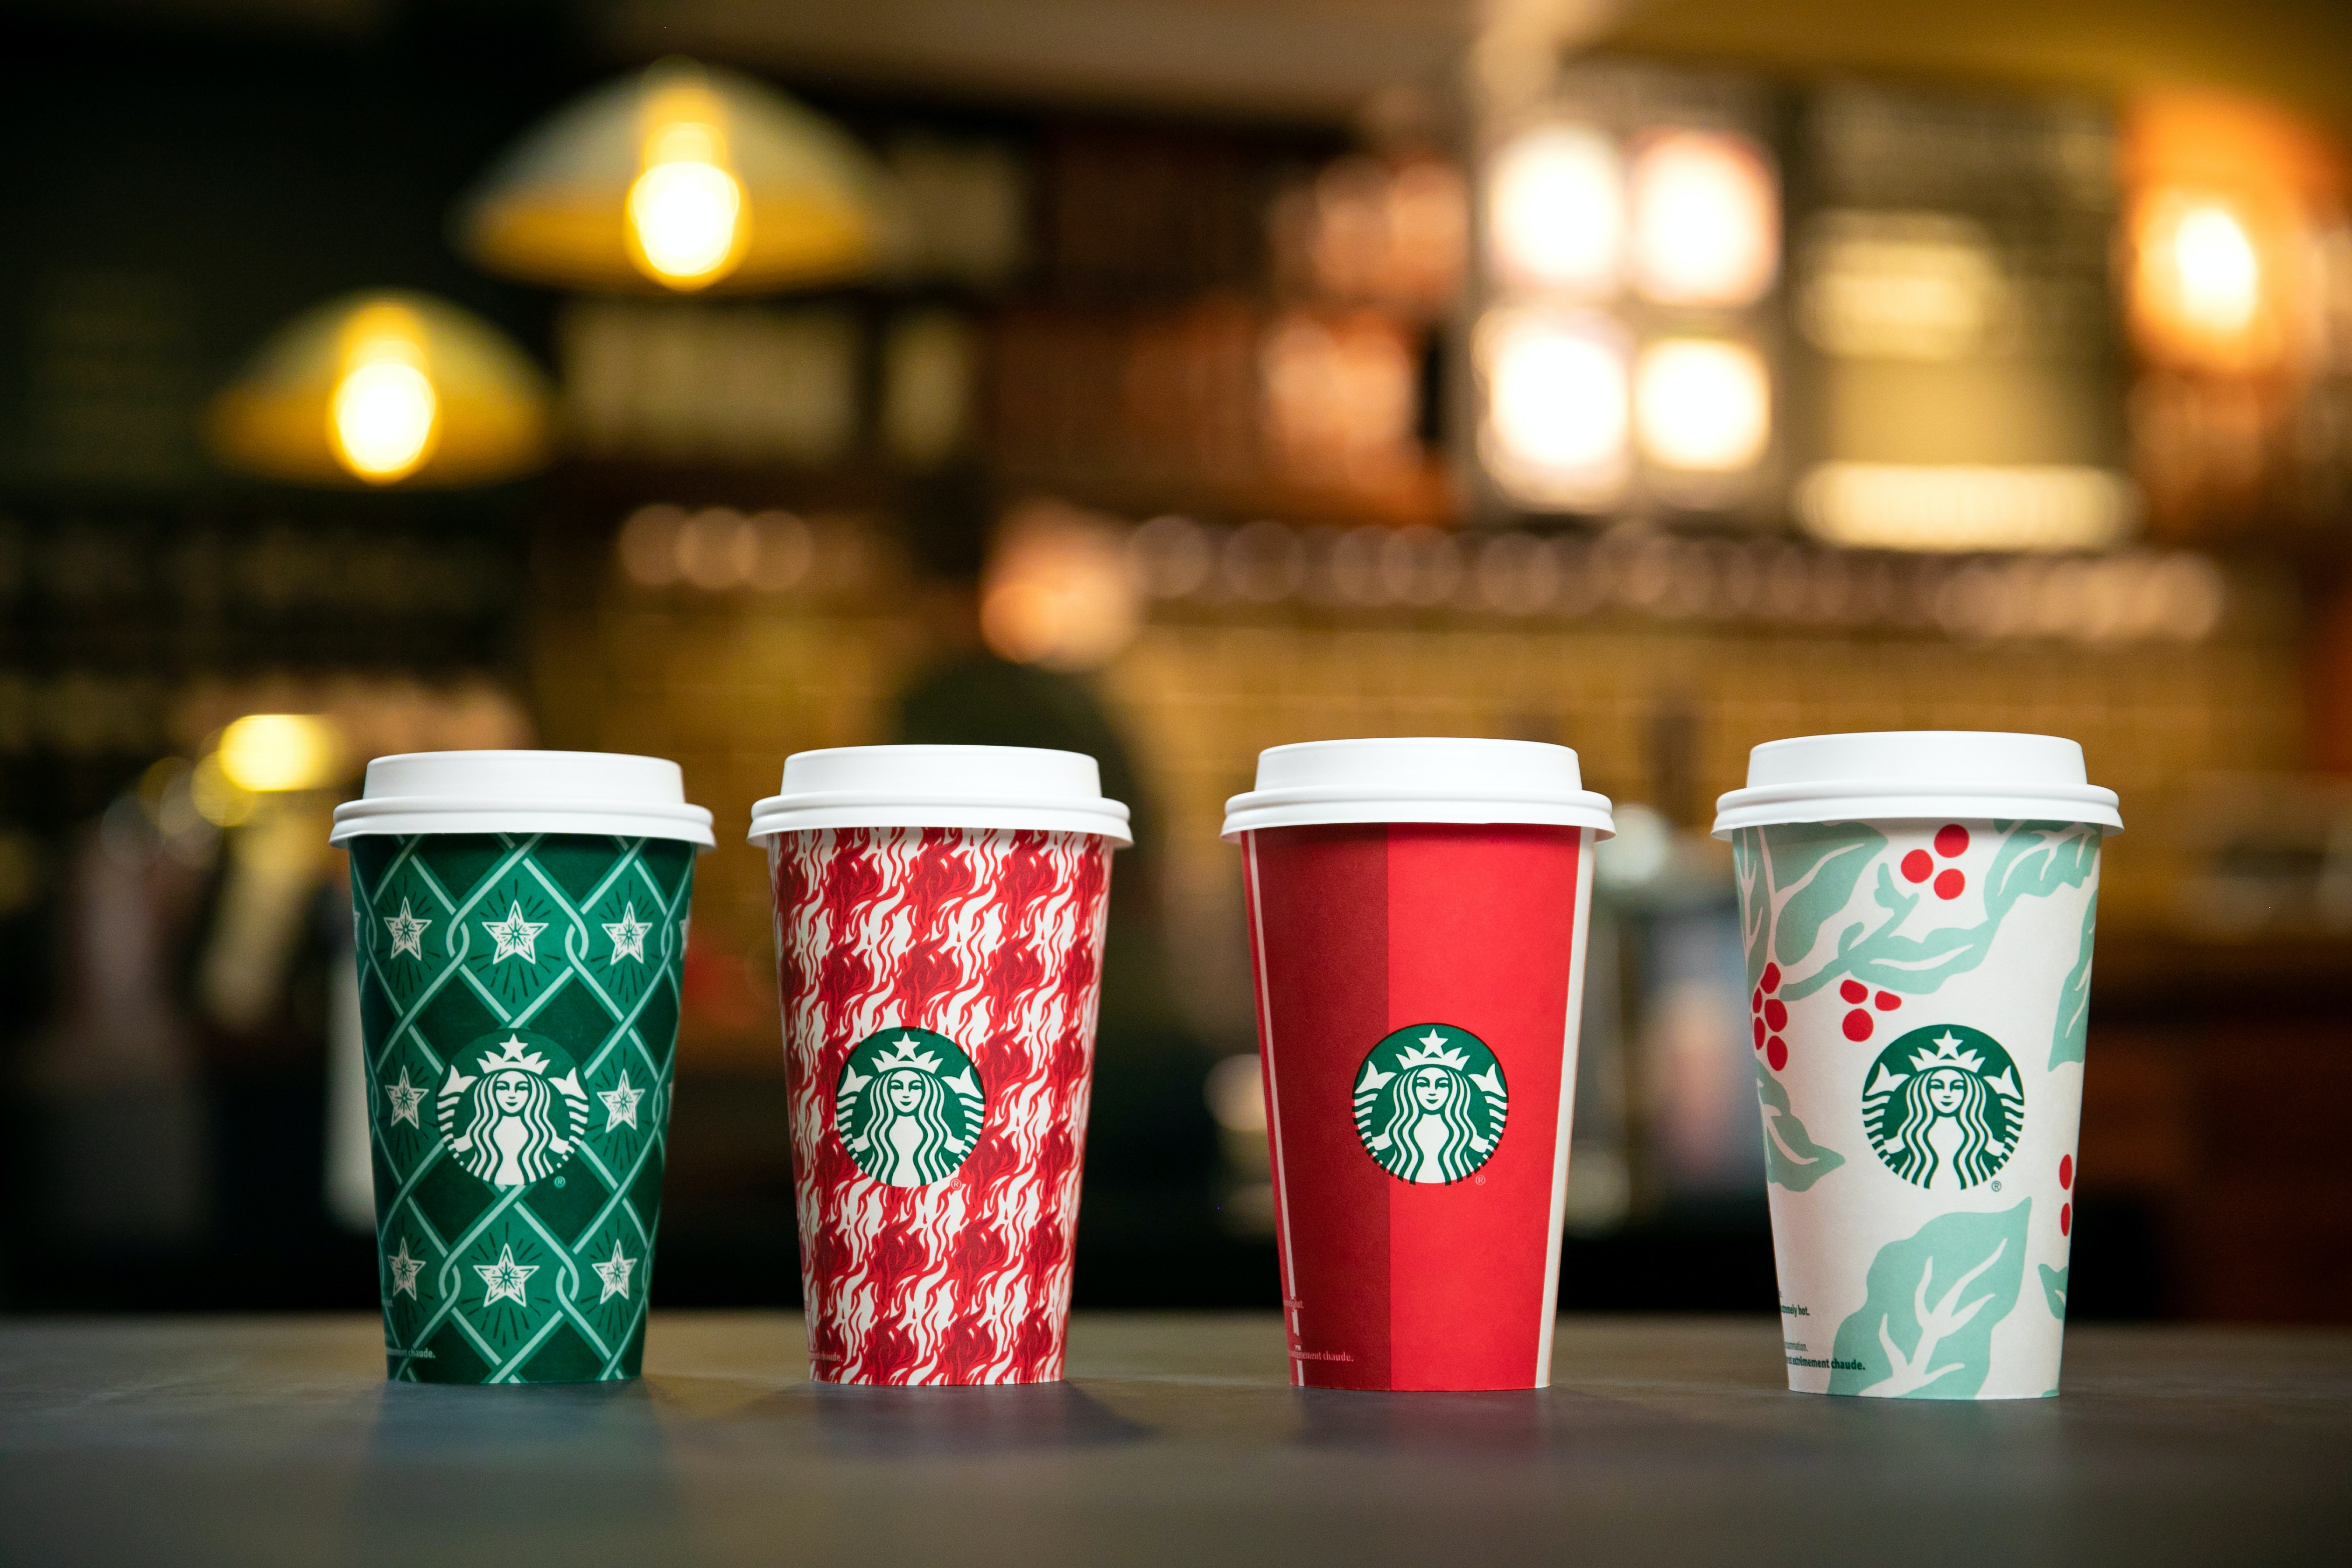 Christmas Starbucks Drinks 2019.Starbucks Holiday Drink Lineup For 2018 Includes The